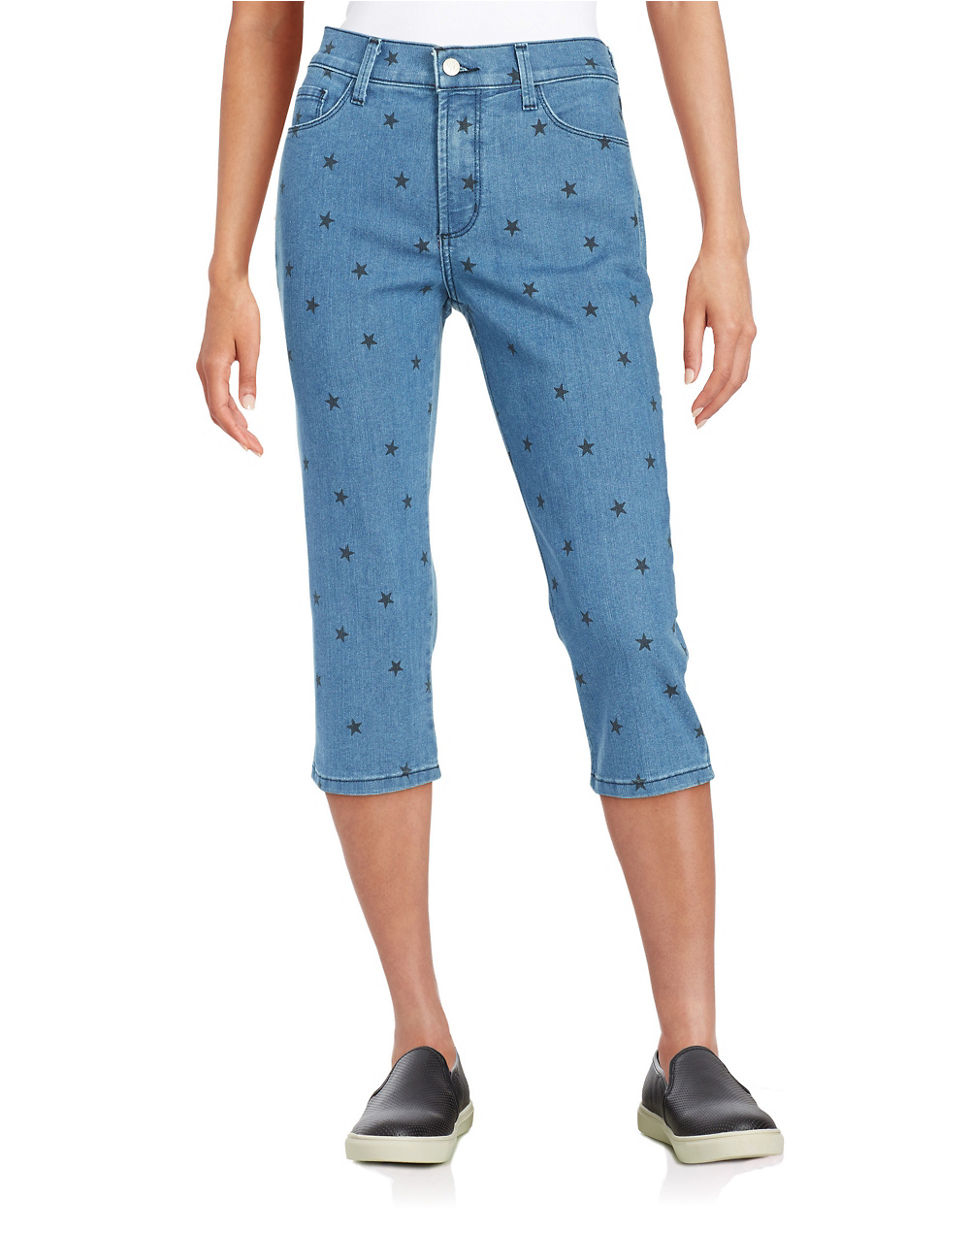 Nydj Petite Star Jean Capri Pants in Blue | Lyst